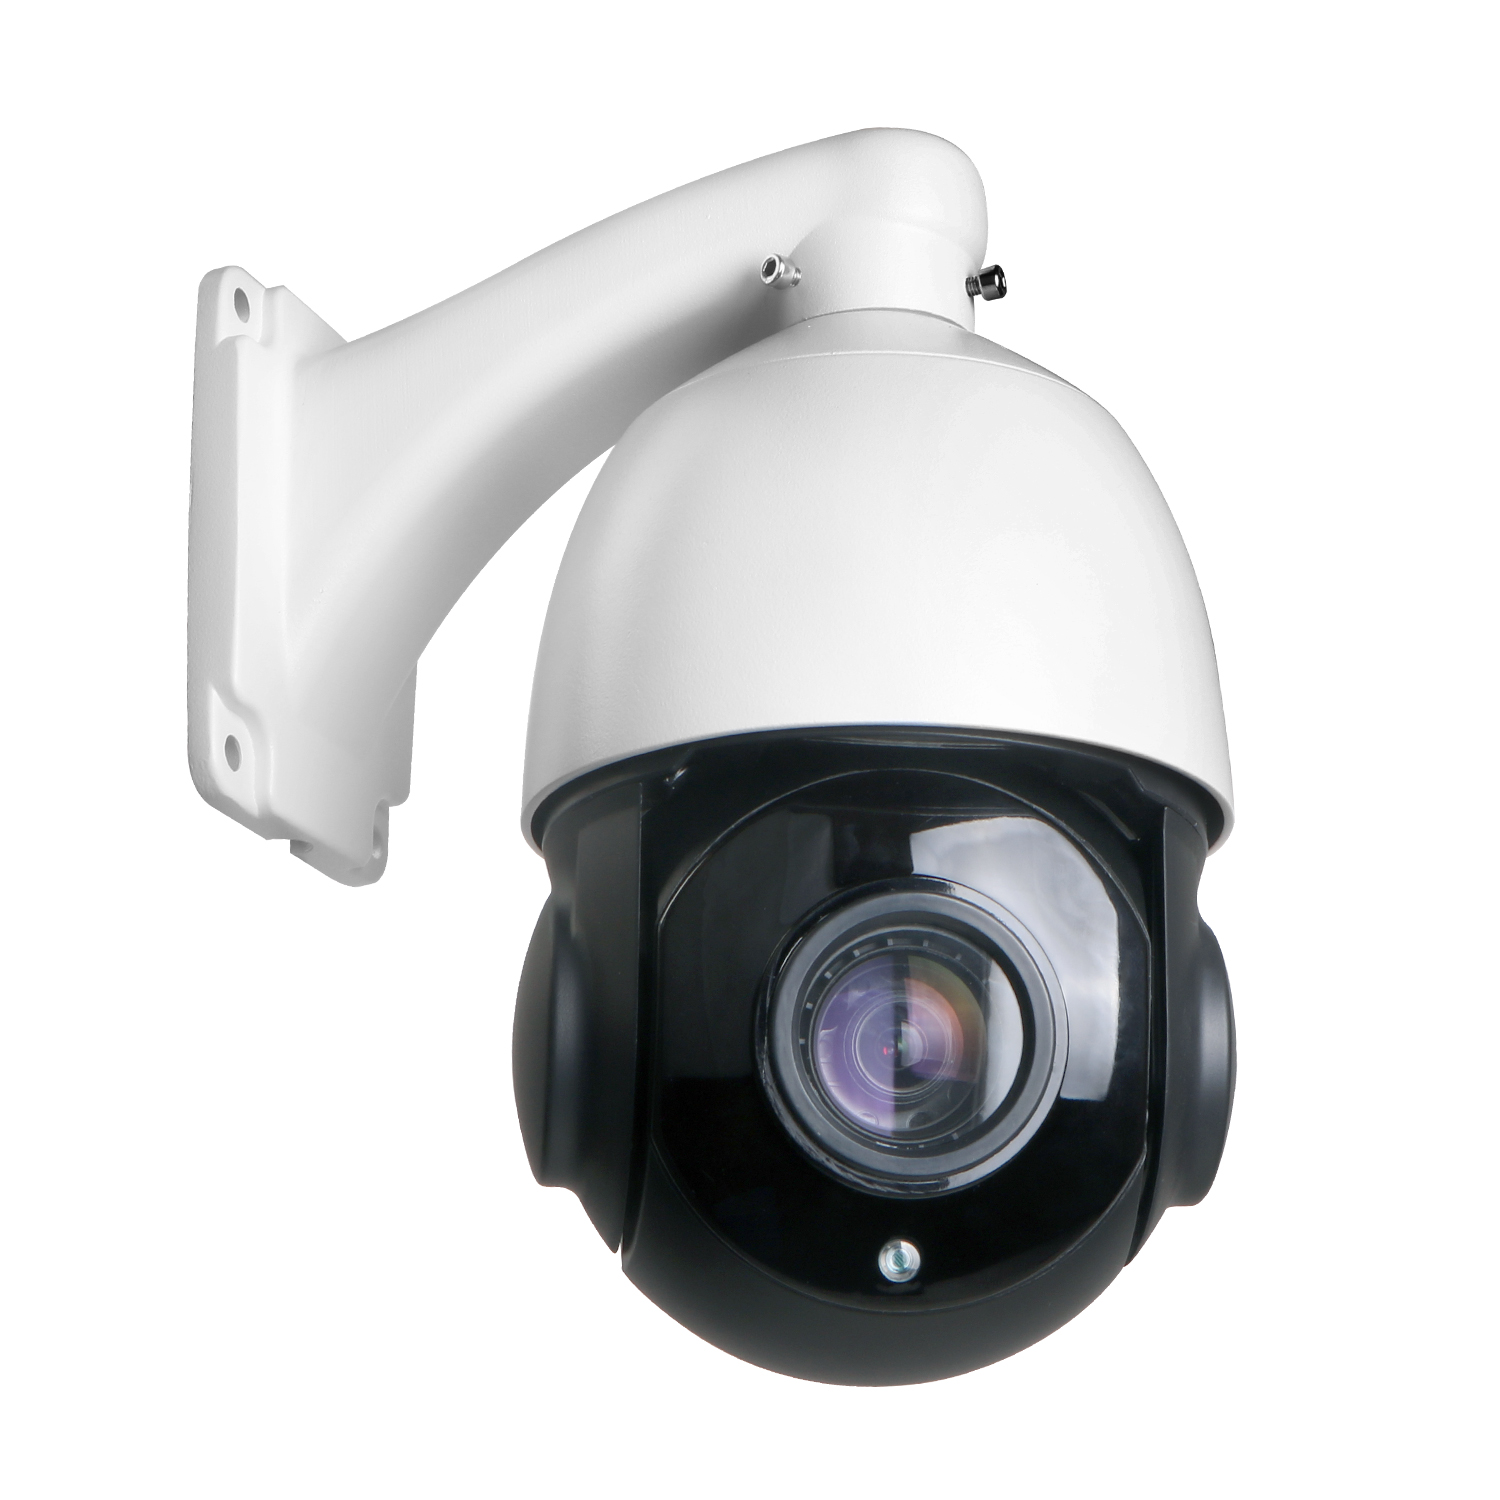 Camera Surveillance Exterieur Ptz 30x Zoom Ptz Ip Camera 4mp Pan Tilt Outdoor Security